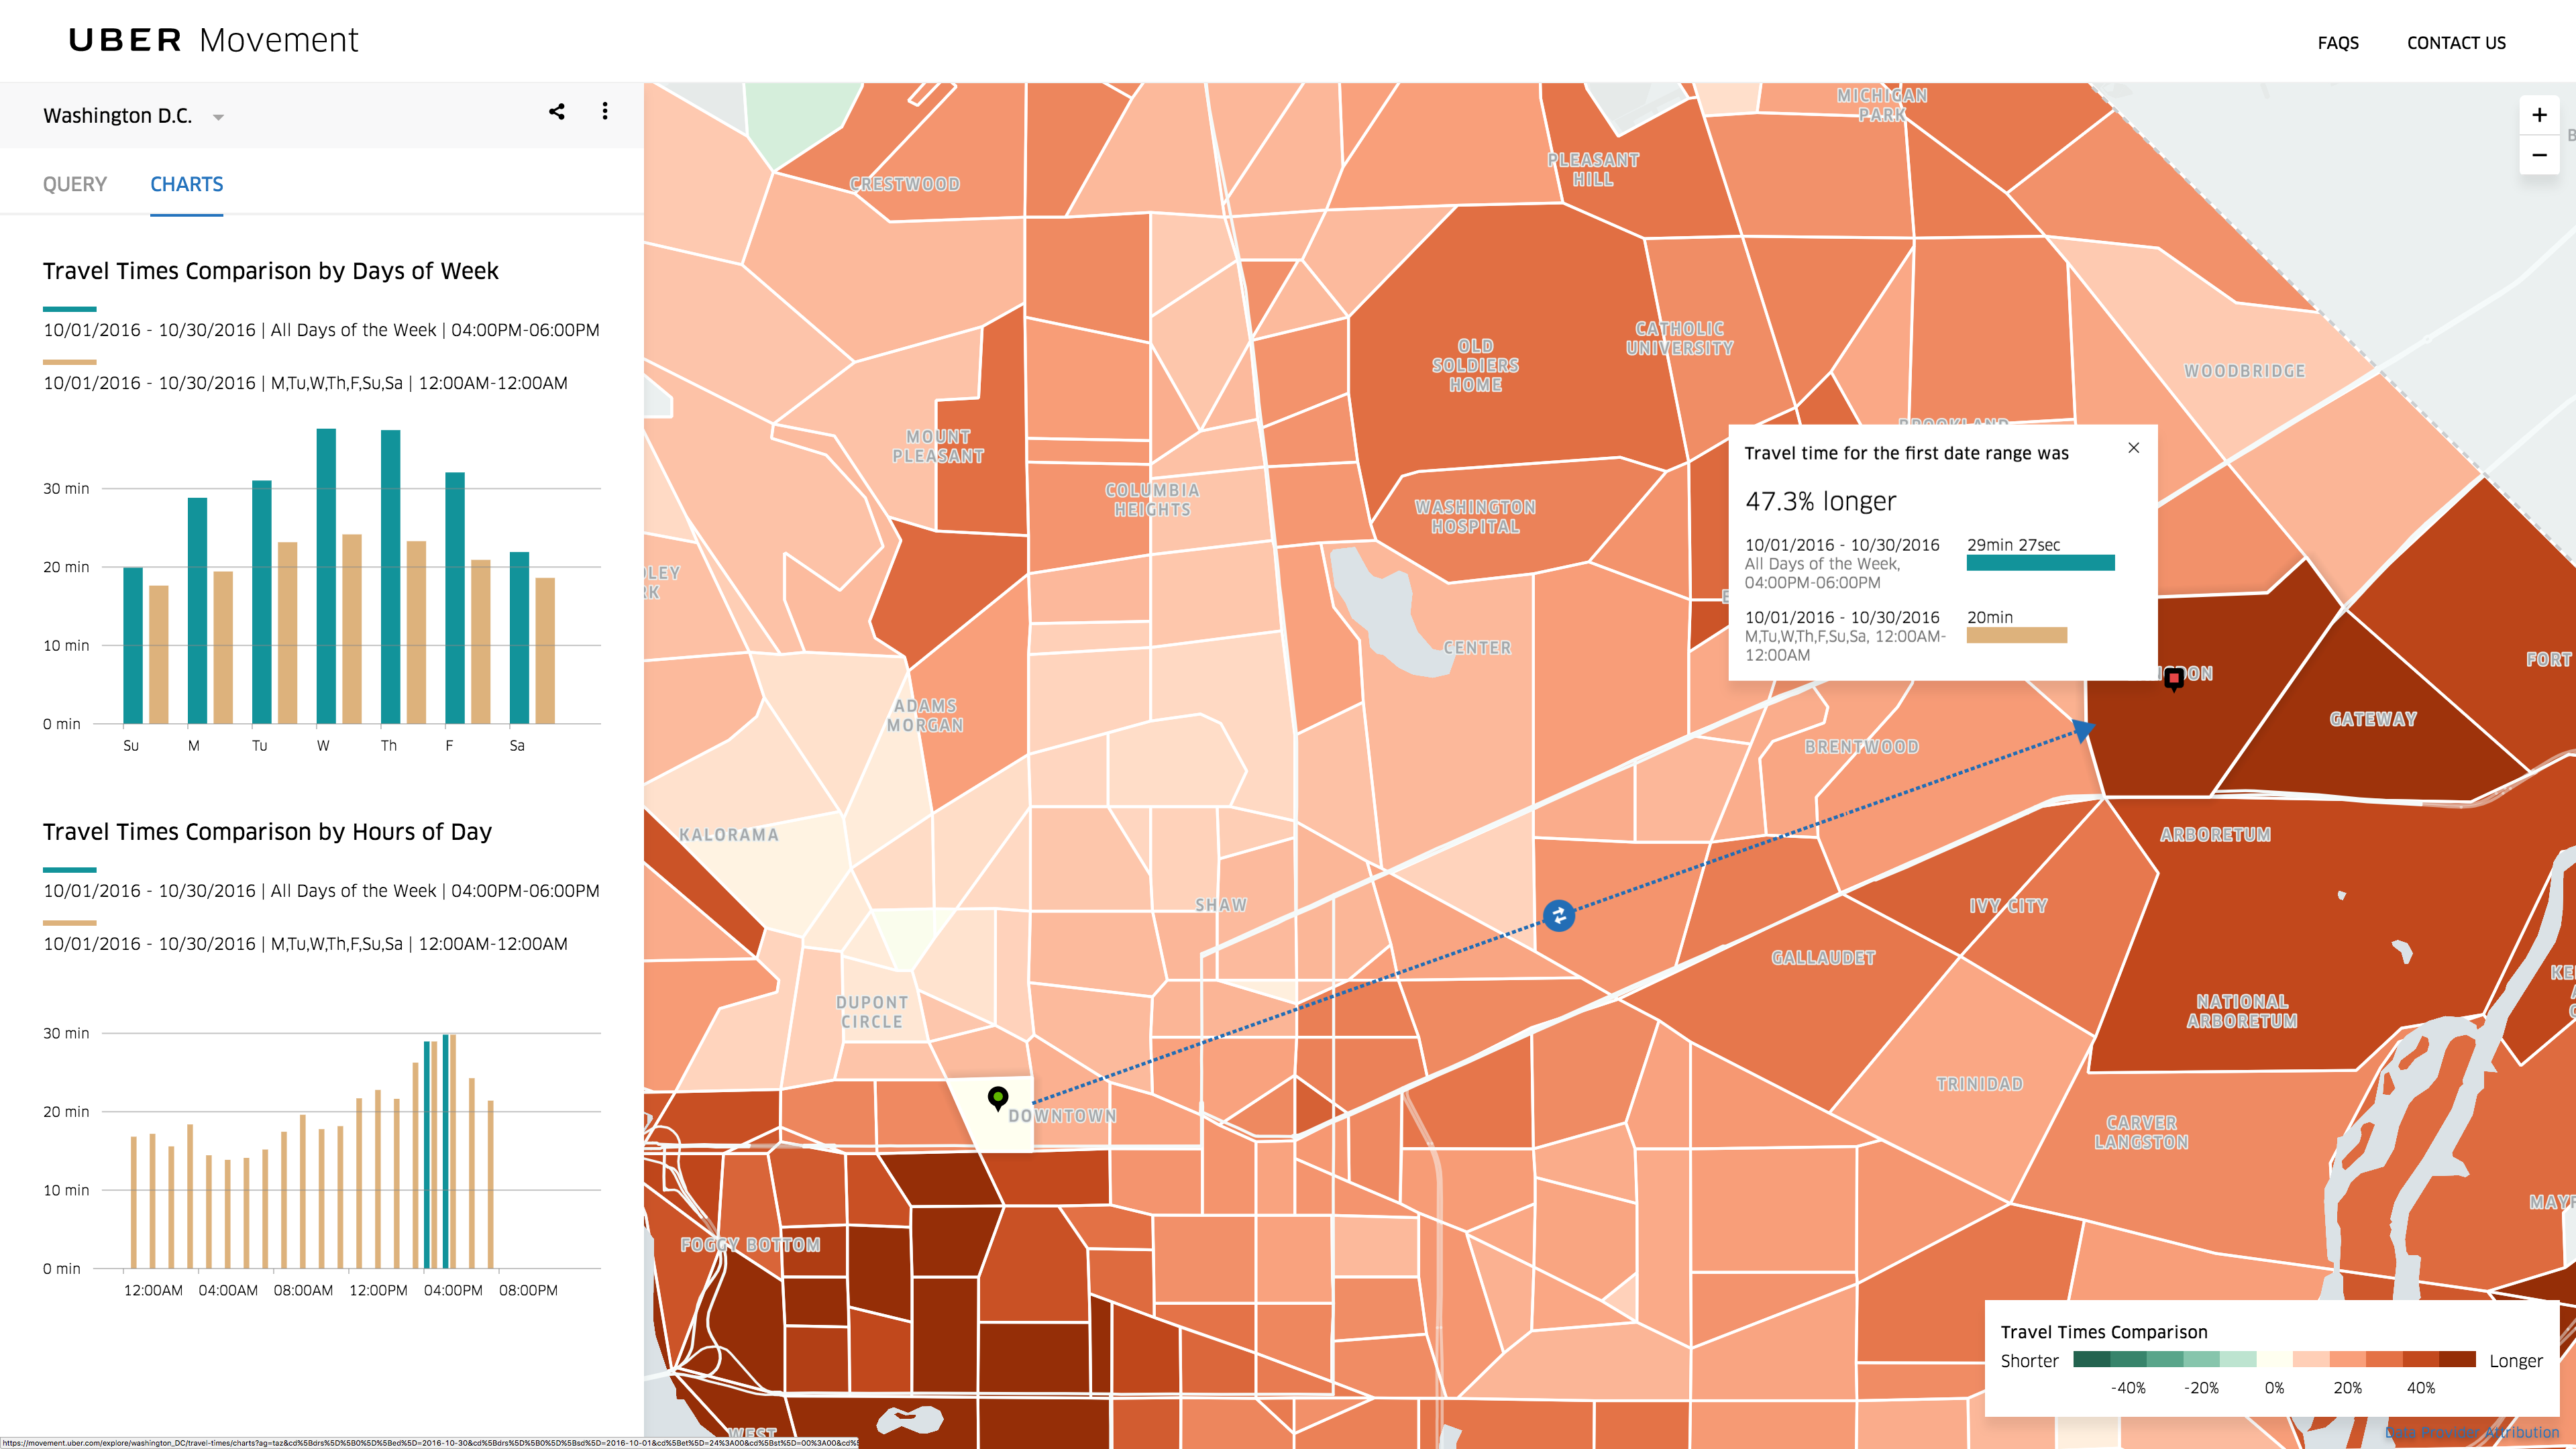 Uber's new tool gives cities a mind-bogglingly detailed view of traffic patterns